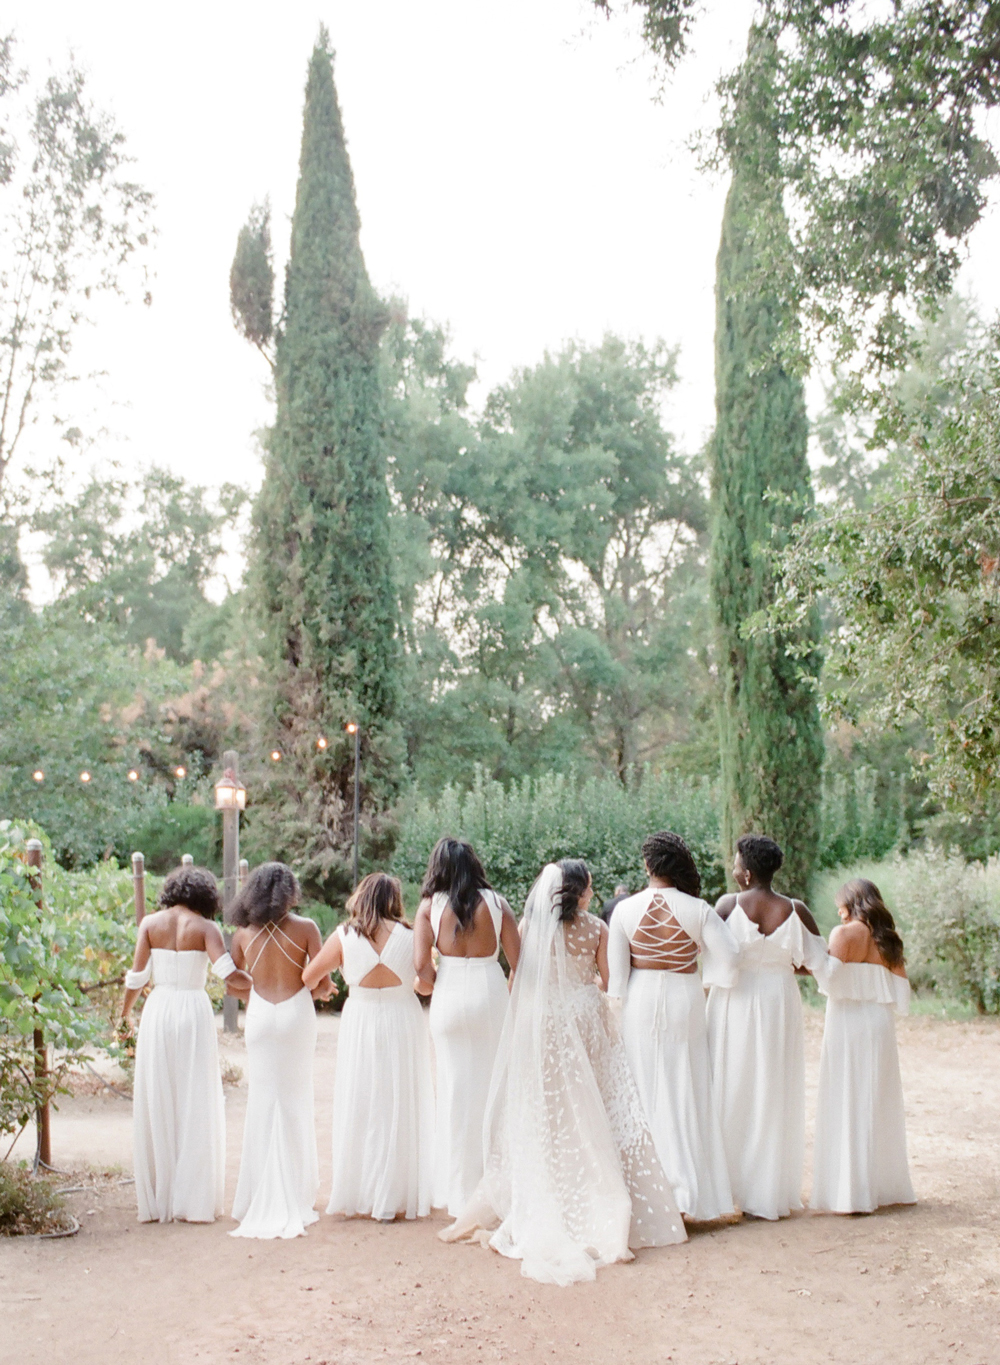 White Bridesmaids' Dresses with Dramatic Backs